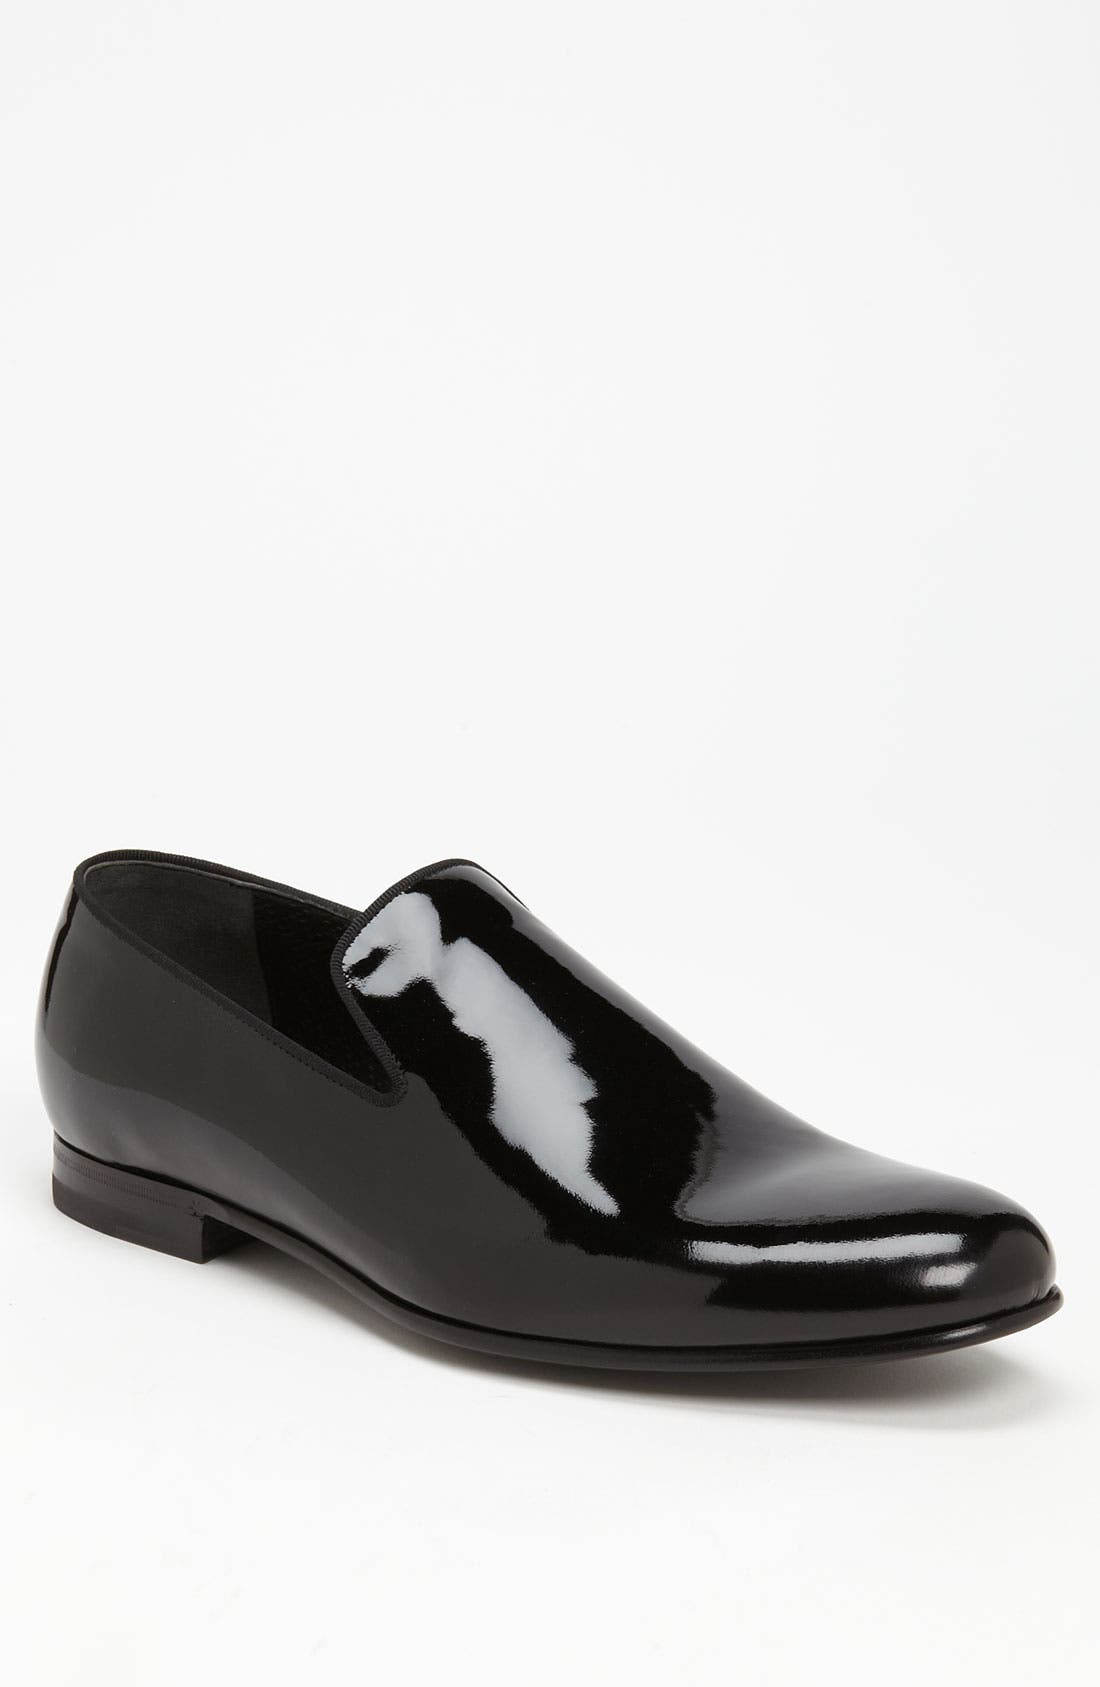 Alternate Image 1 Selected - Gucci 'Alexandre' Loafer